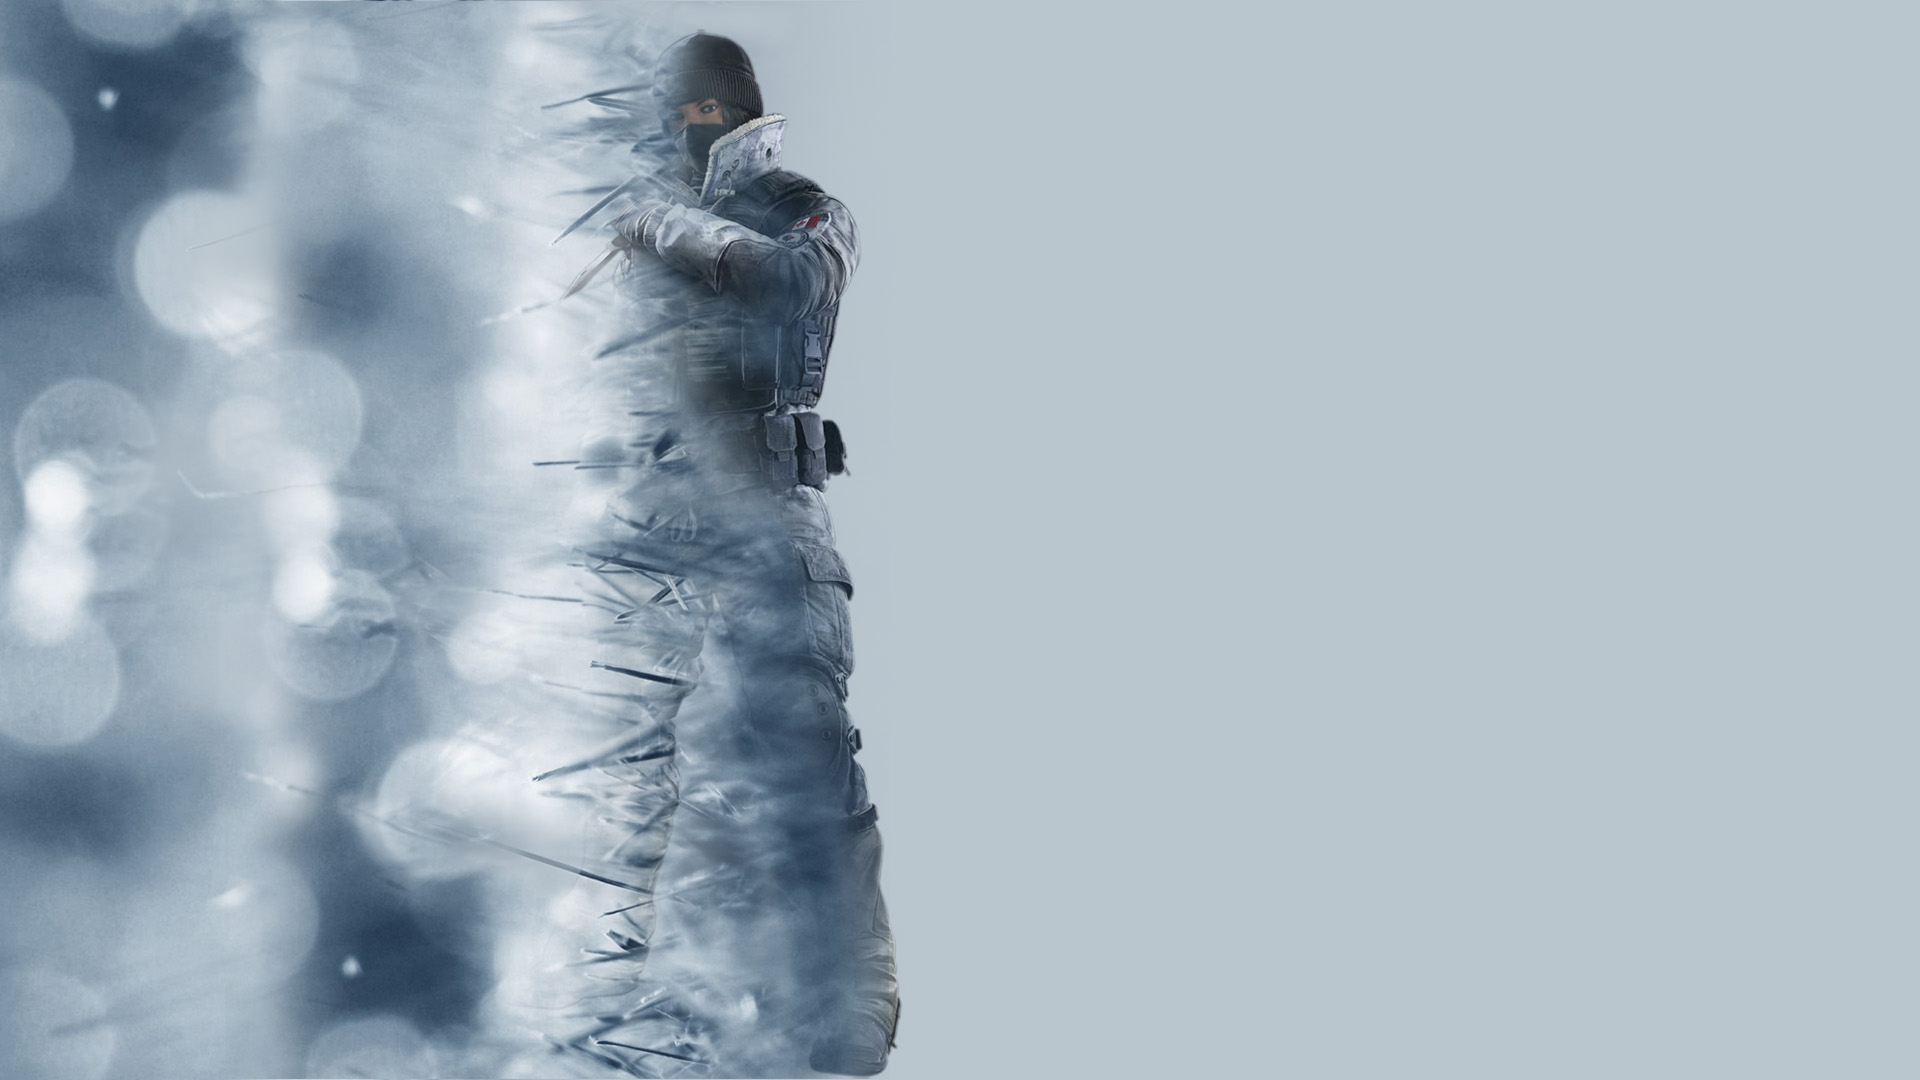 Rainbow Six Siege Frost Wallpaper Posted By Michelle Anderson